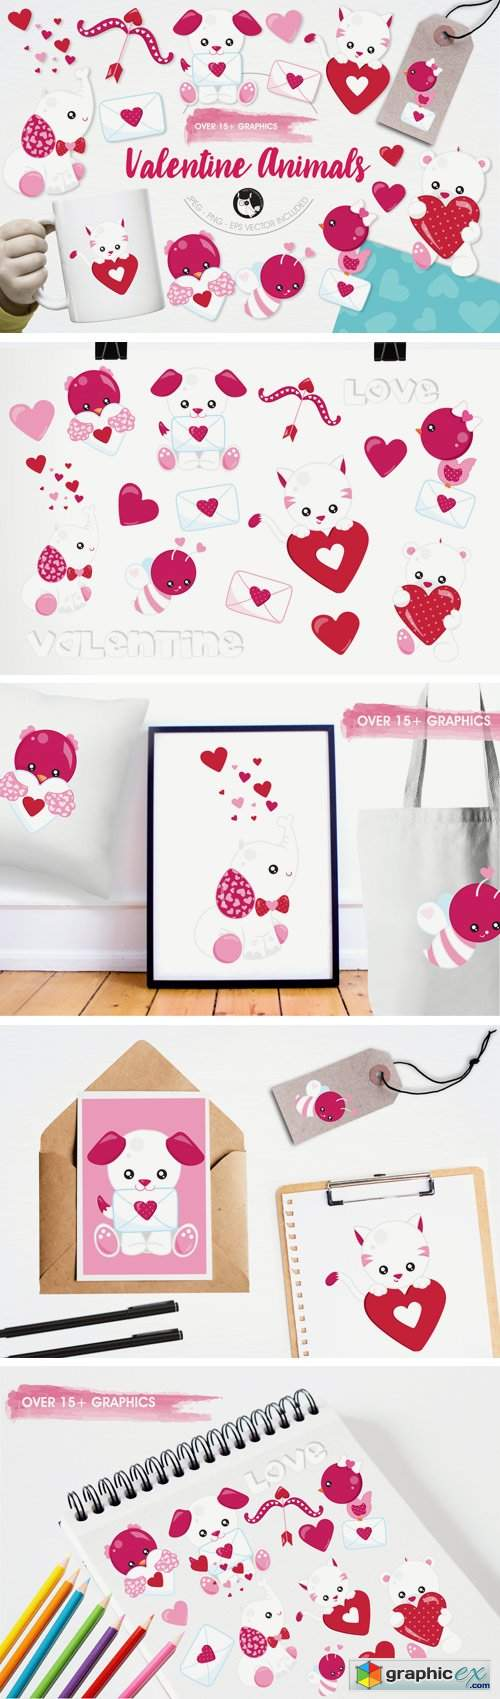 Valentine Animals Graphics and Illustrations